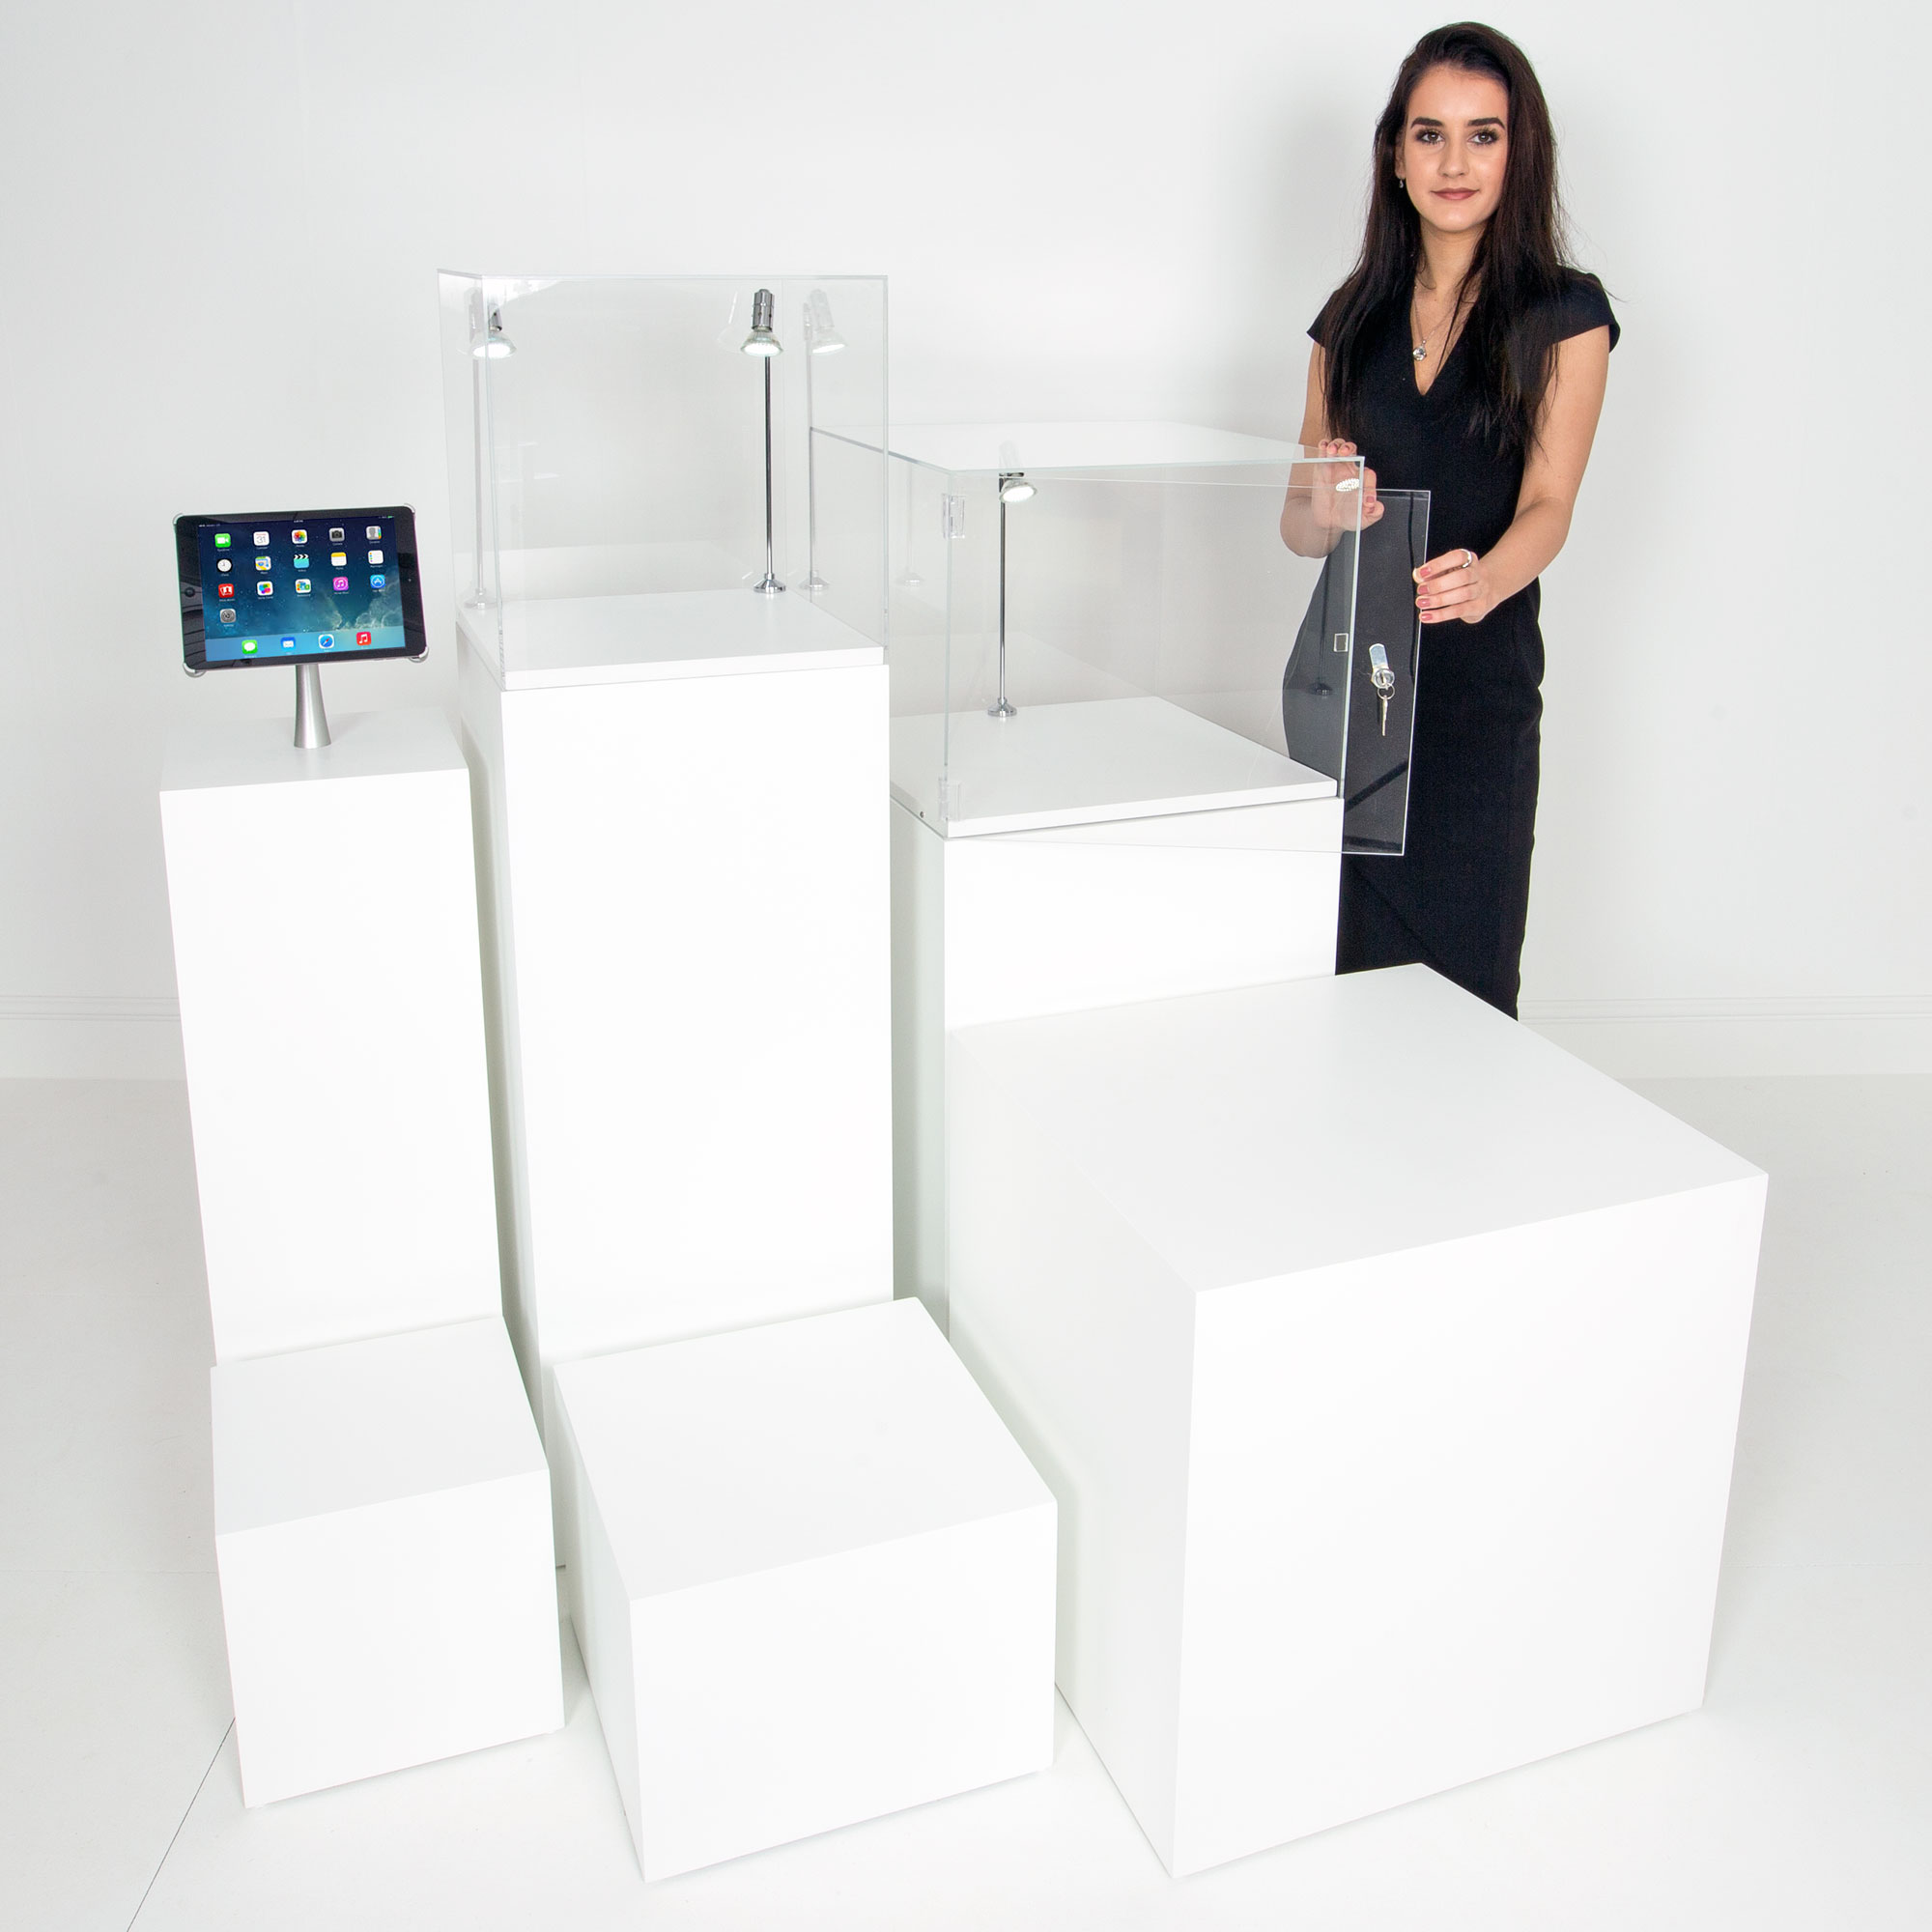 Display Stand Hire Uk : Display plinths hire or buy and pedestals ltd